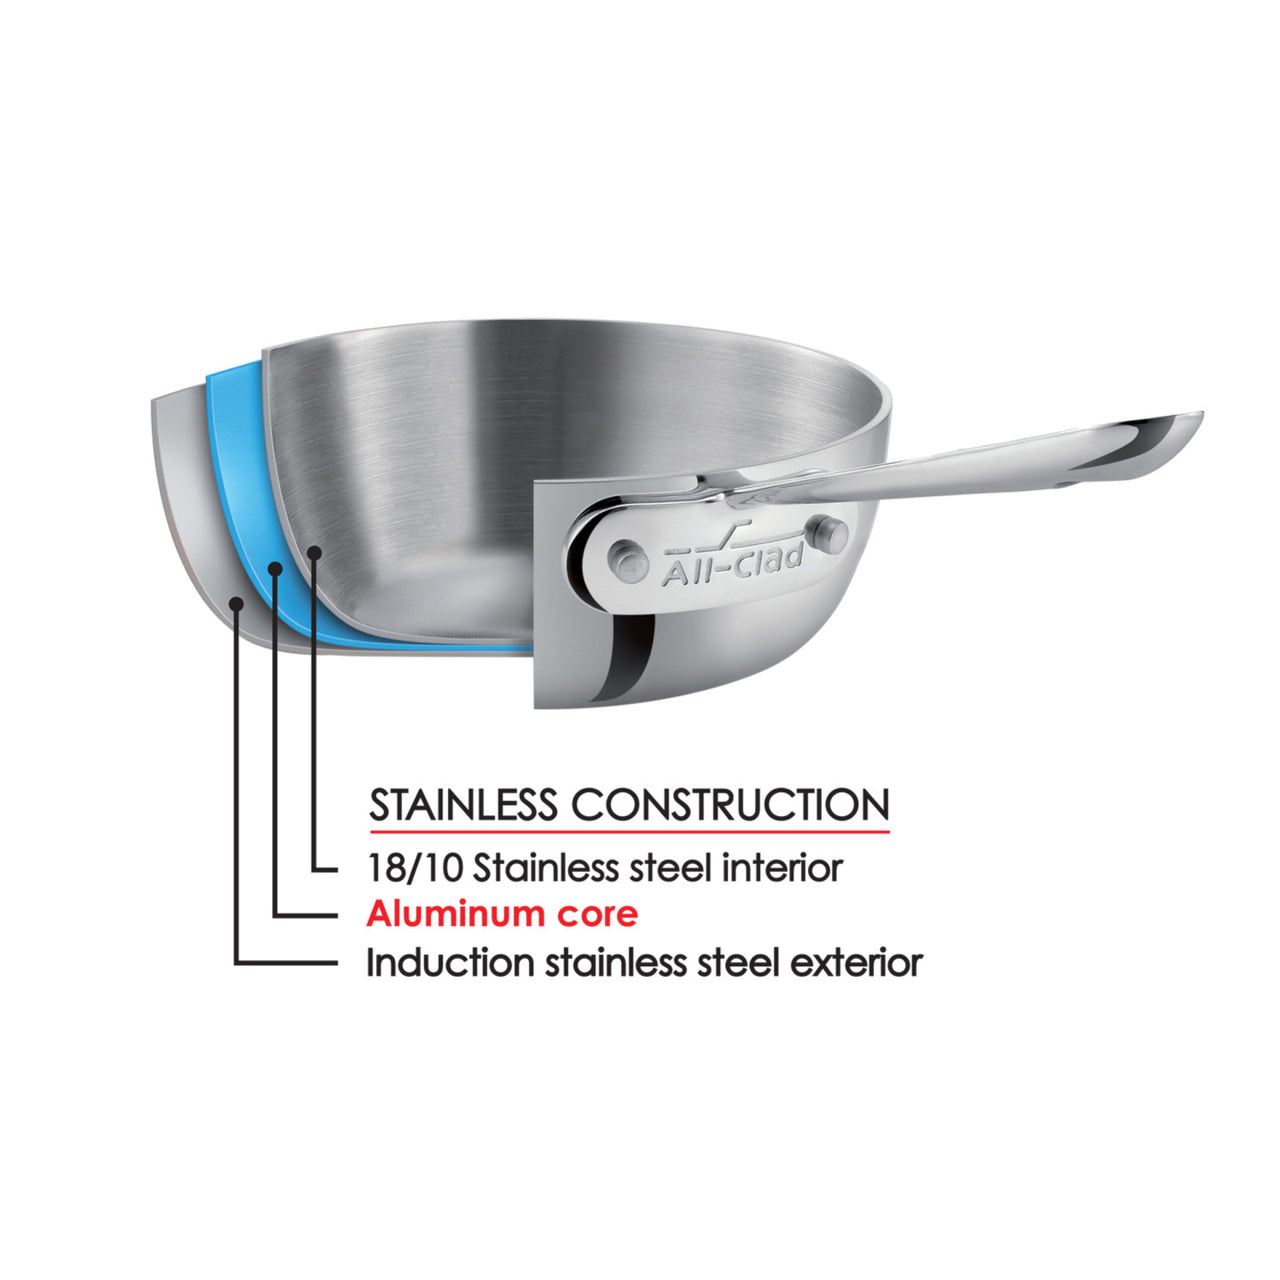 All-Clad d3 / TriPly Frying Pan with Lid